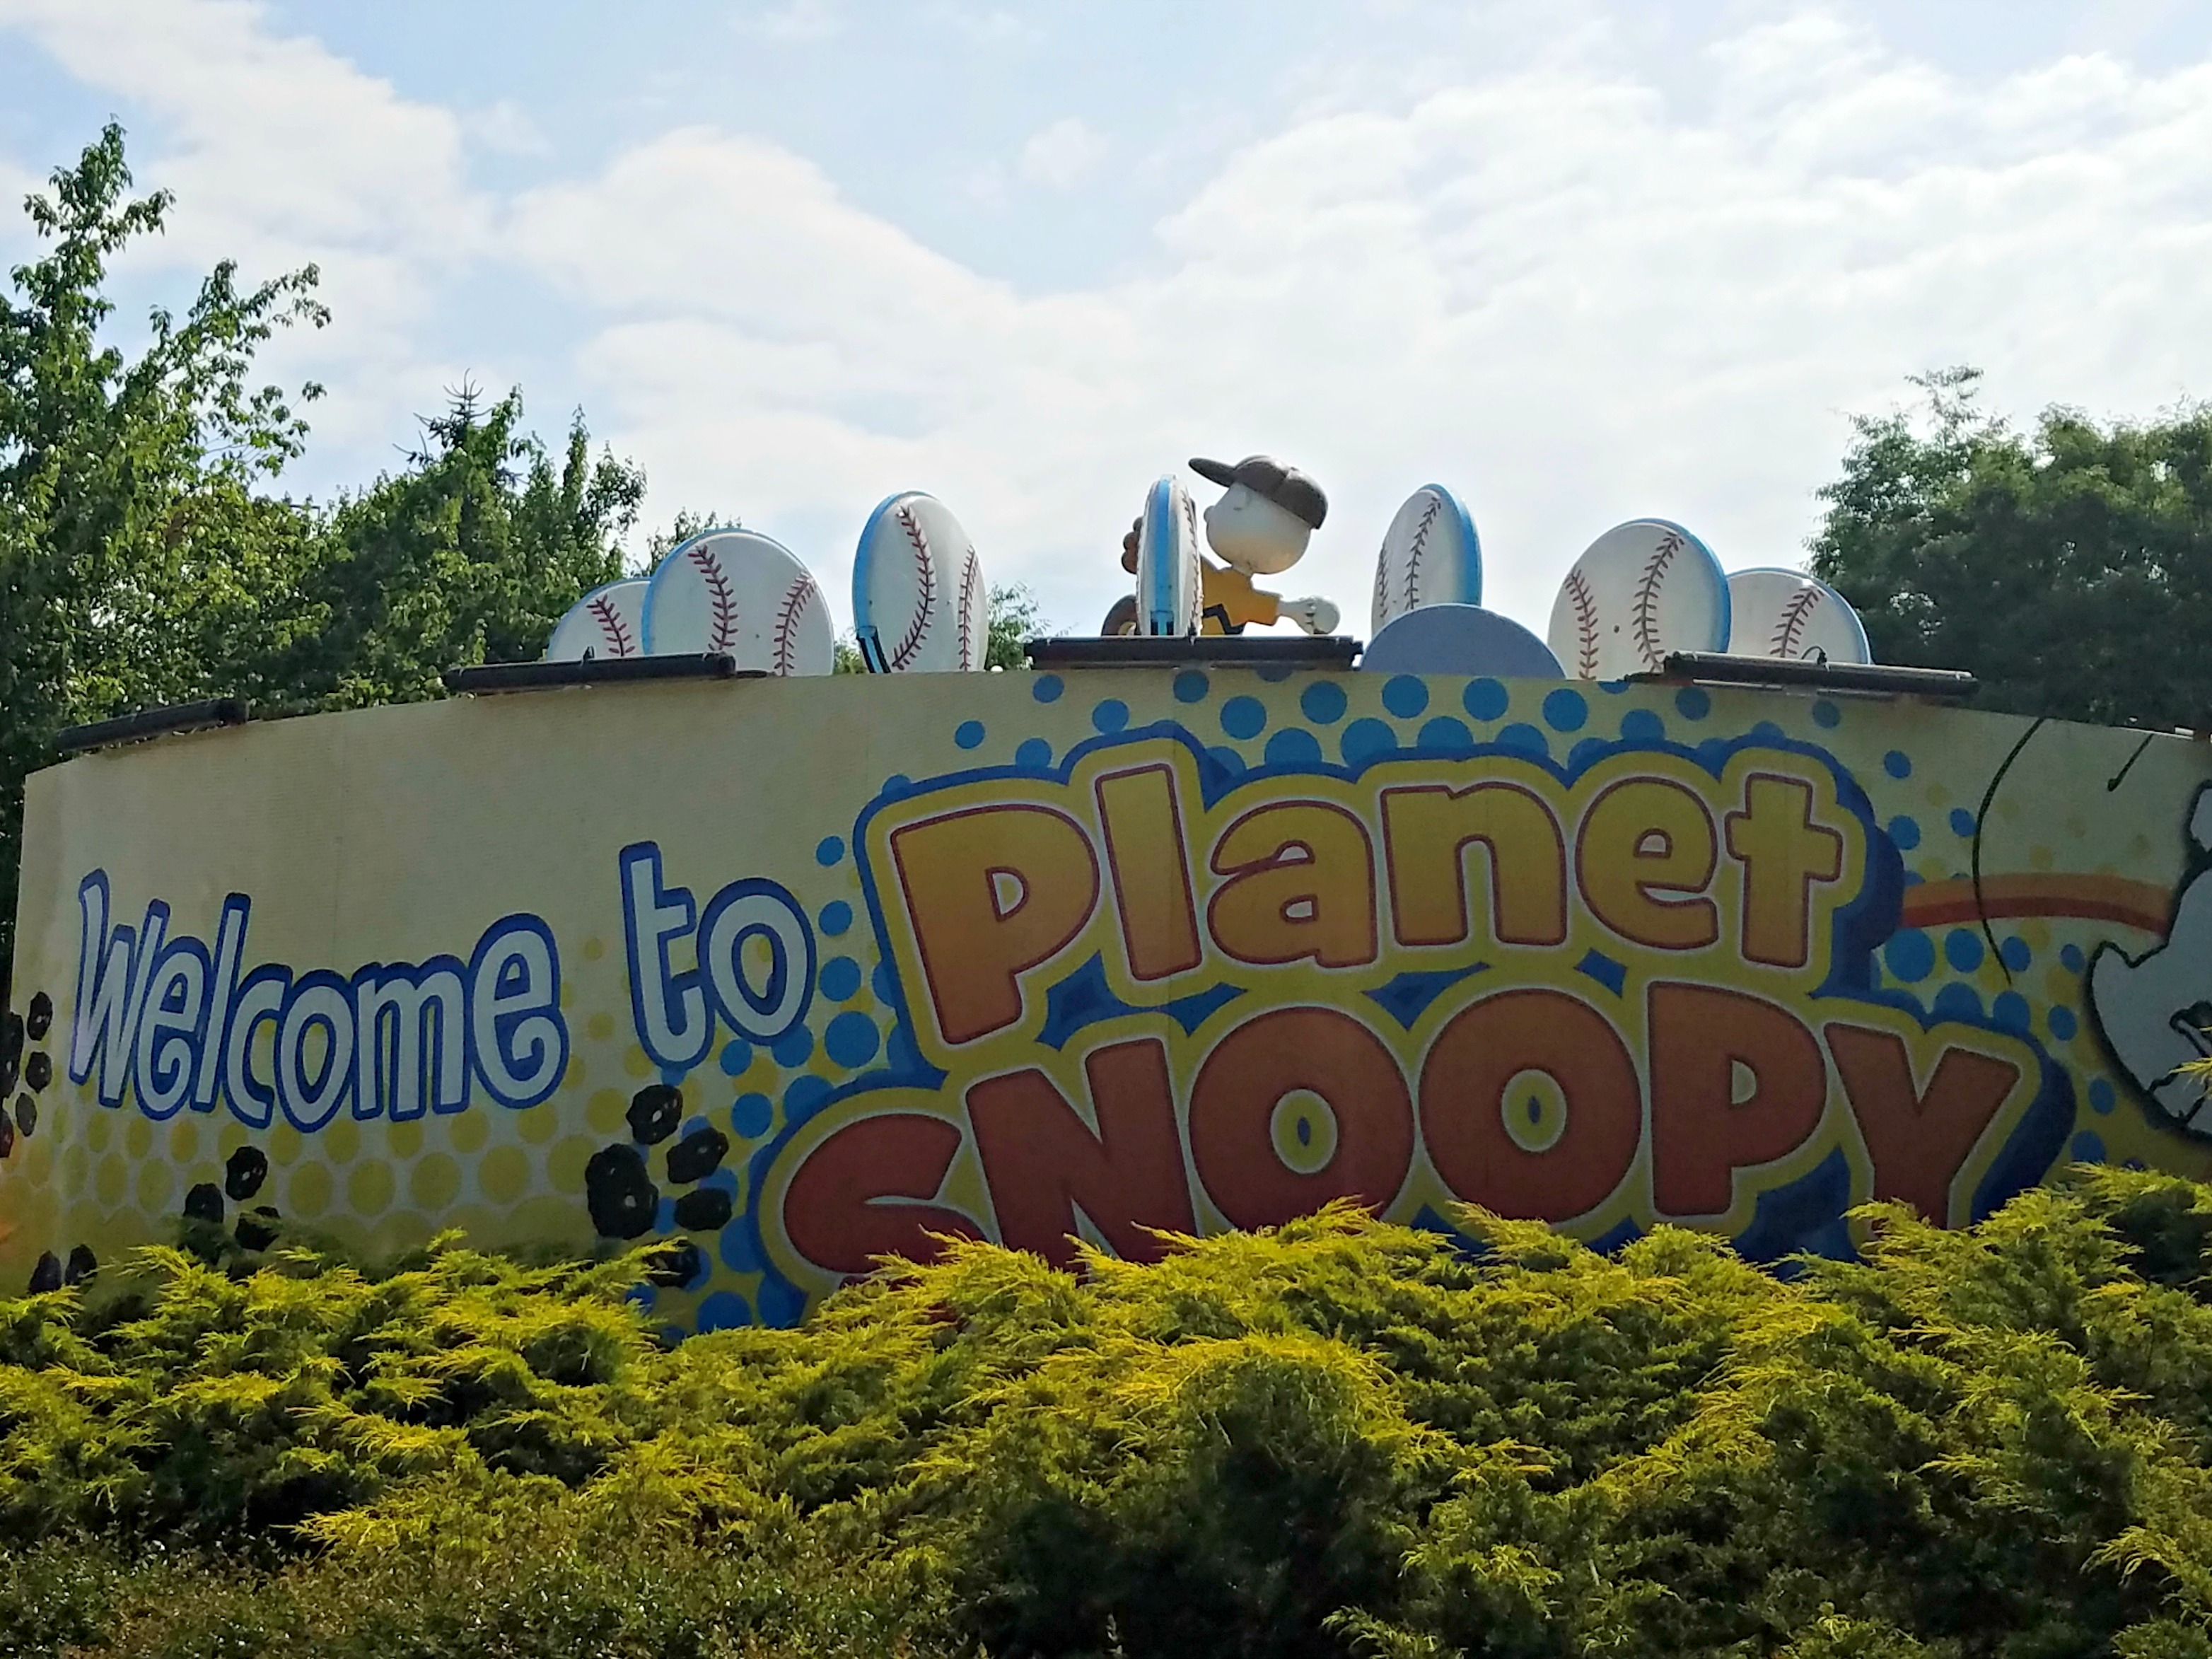 Planet Snoopy, with amusement park rides for little kids, at Dorney Park and Wild Water Kingdom